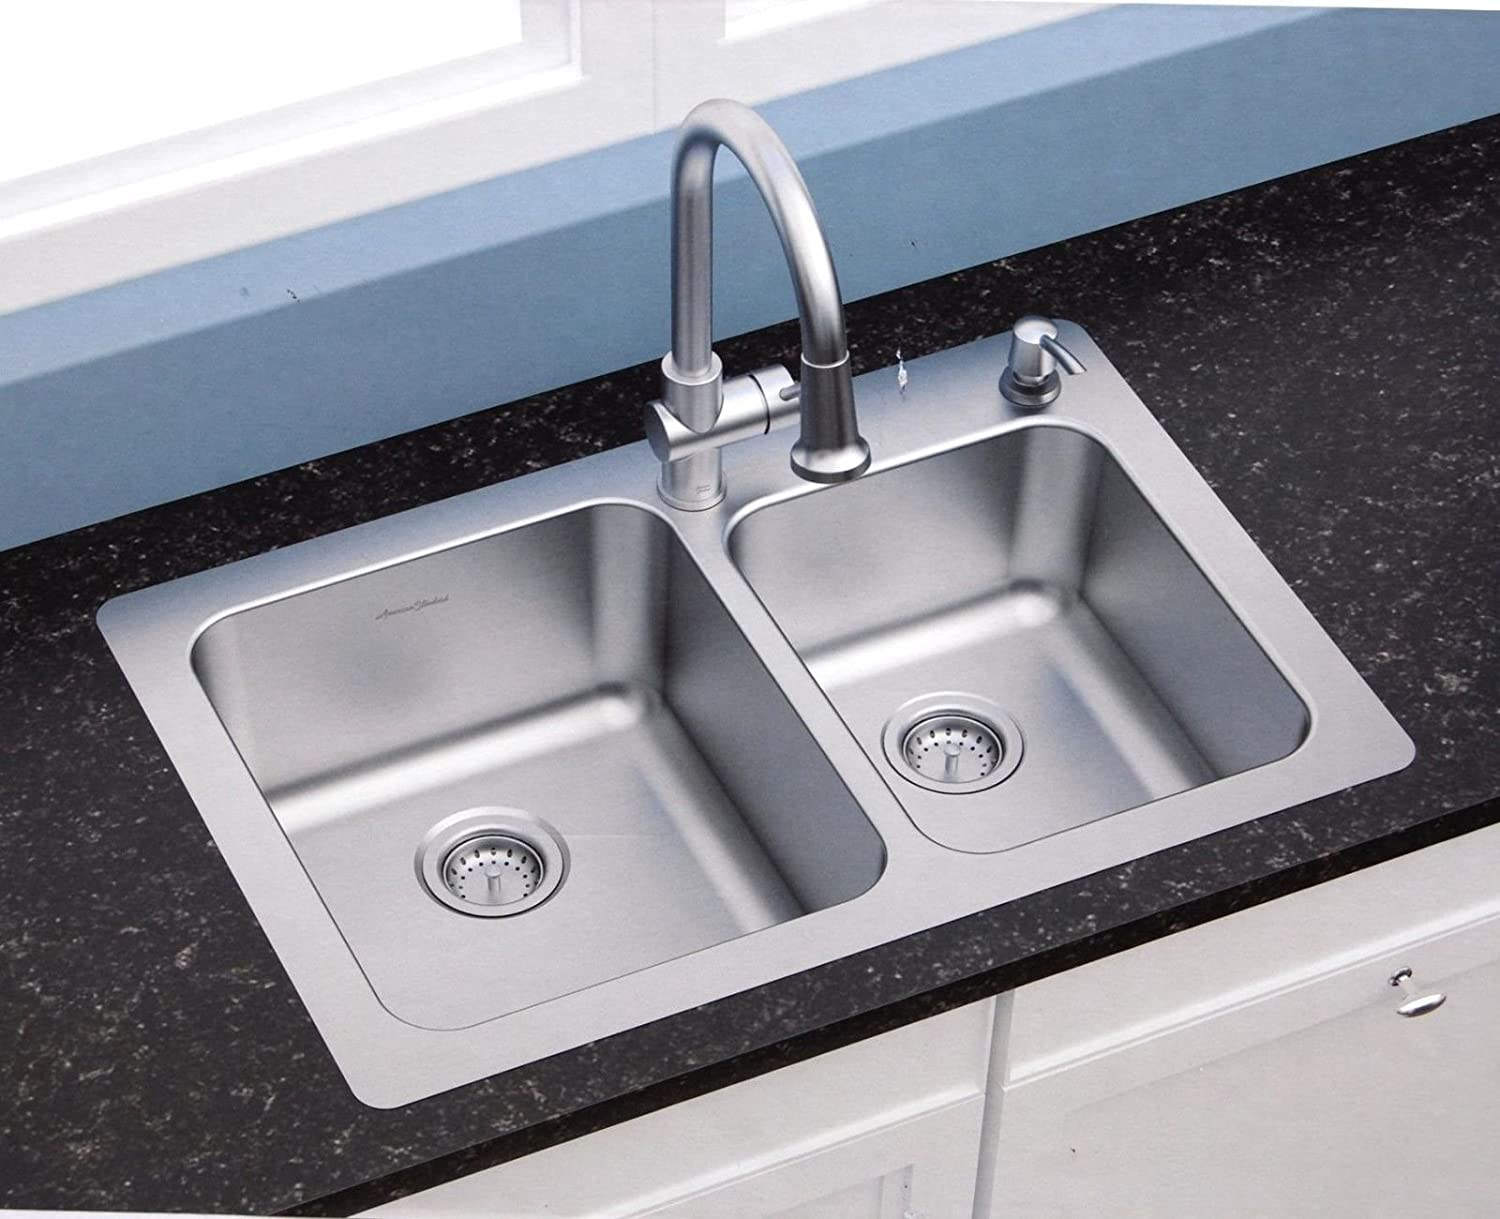 american standard 18 gauge 33 x 22 stainless steel kitchen sink with a stainless steel pull down faucet combo set     amazon com american standard 18 gauge 33 x 22 stainless steel kitchen sink      rh   amazon com